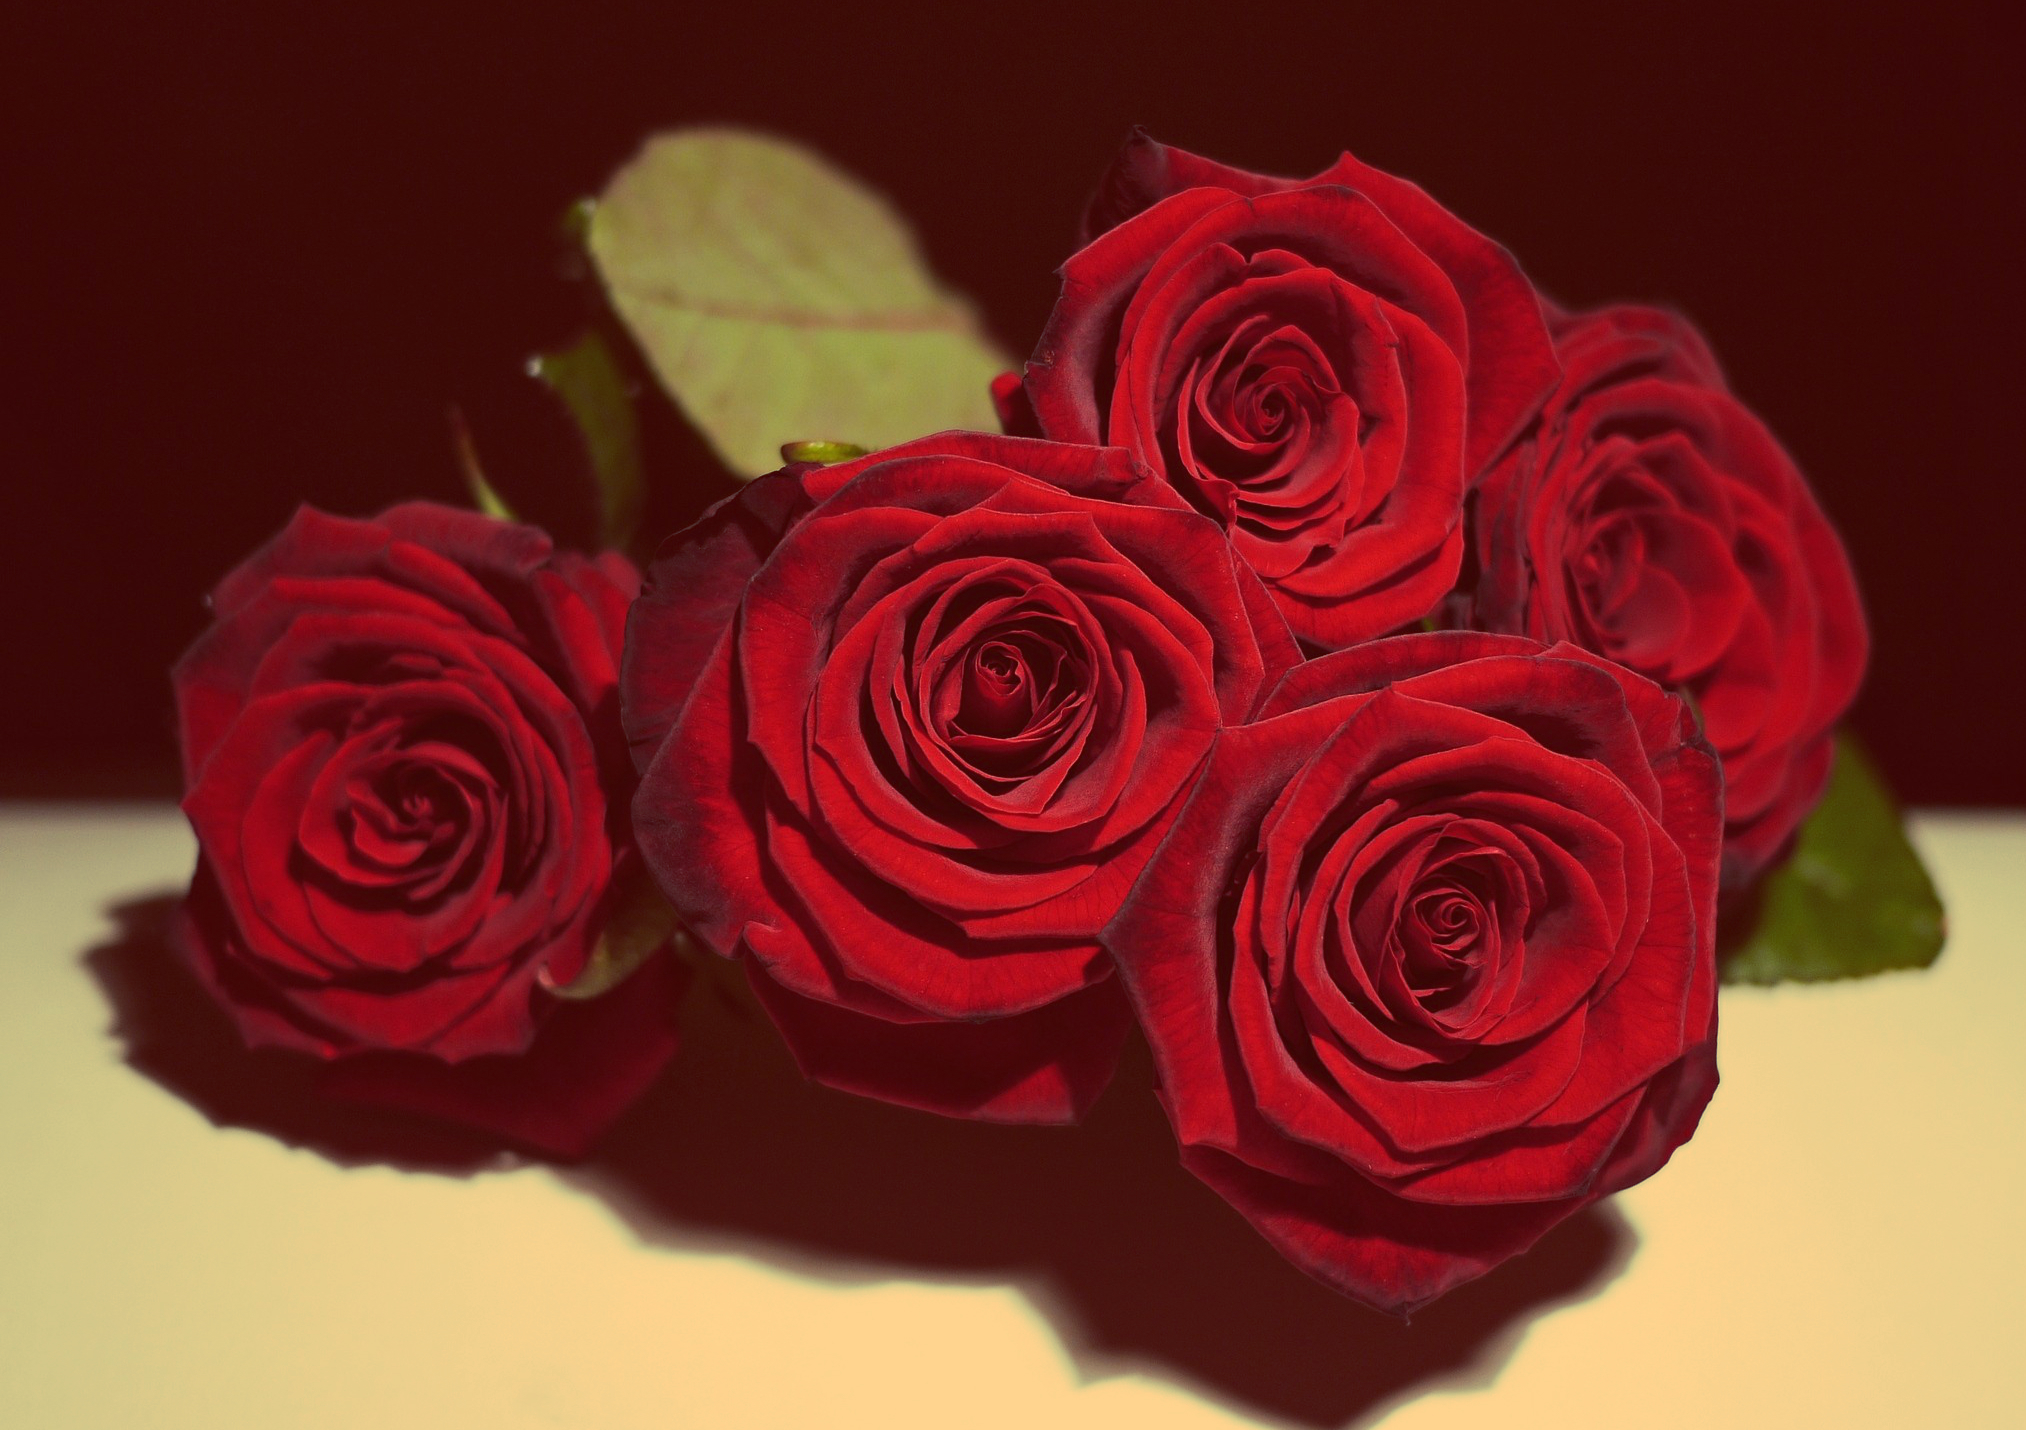 red rose love wallpaper  wallpapersafari, Beautiful flower